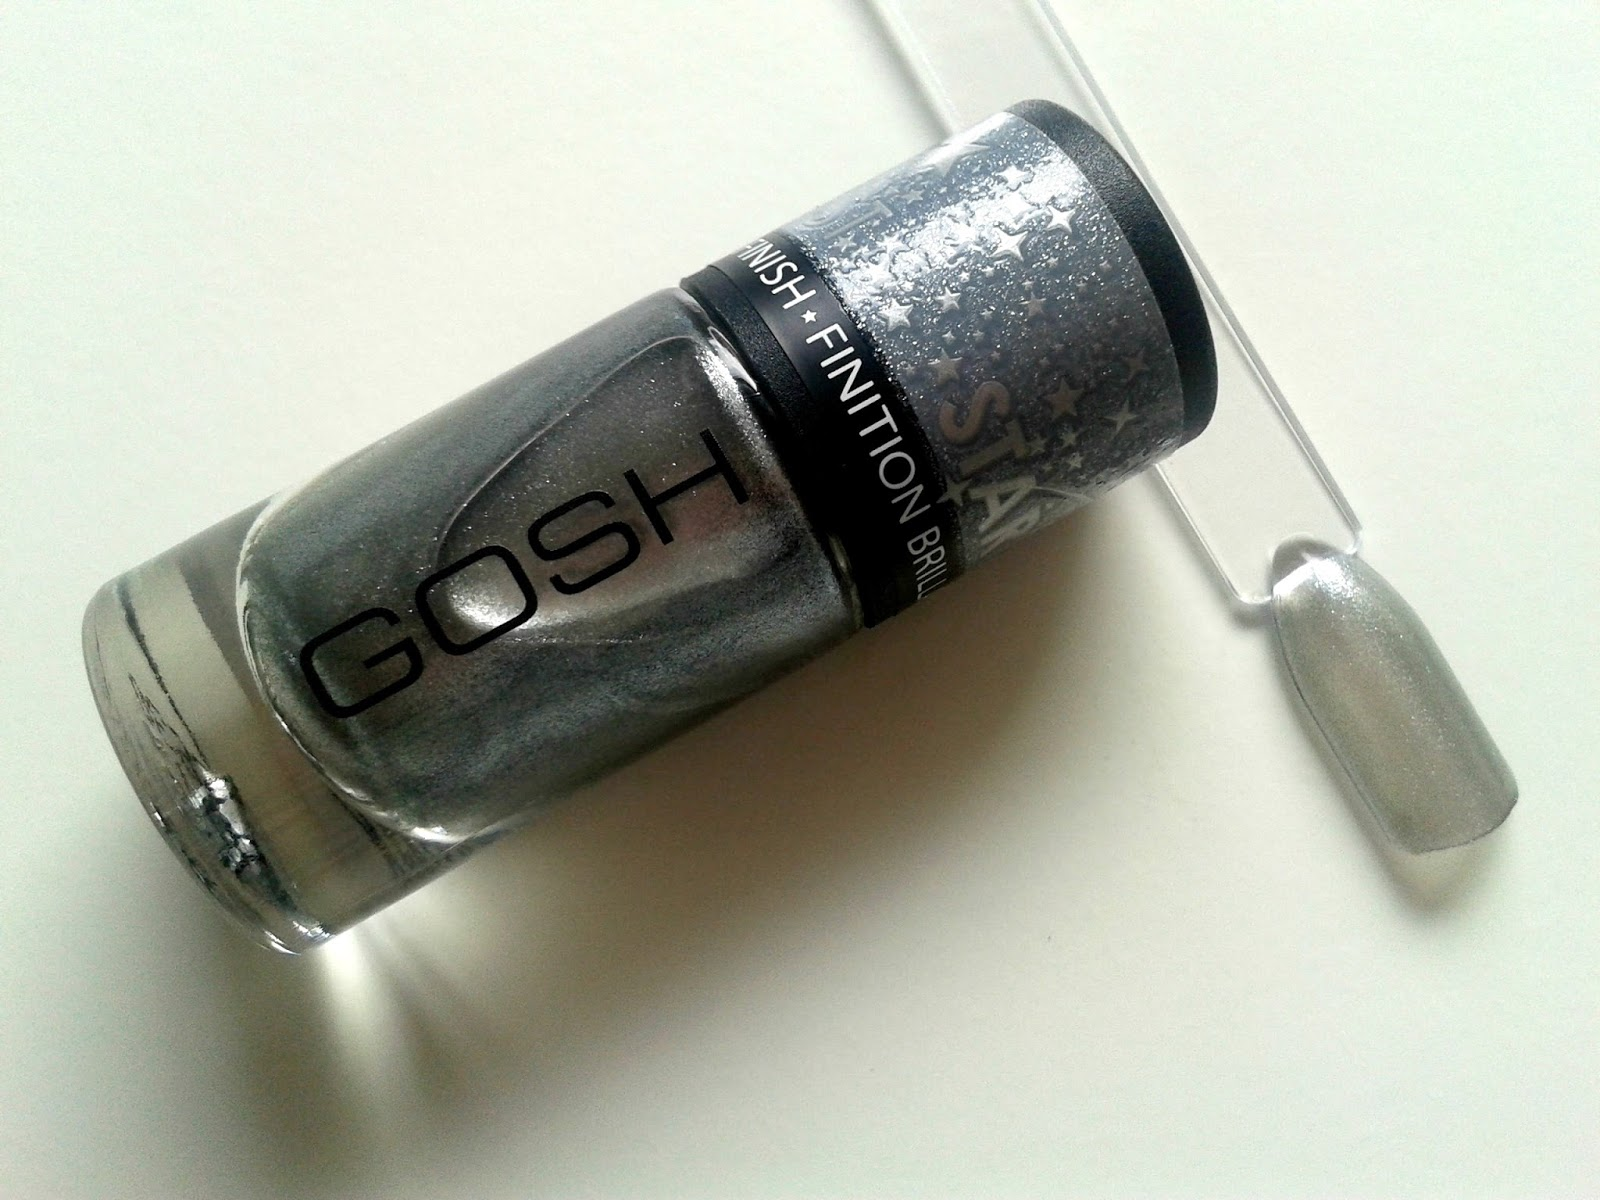 GOSH Nail Polish in Moonlight (630) Beauty Review Swatch Stardust Collection